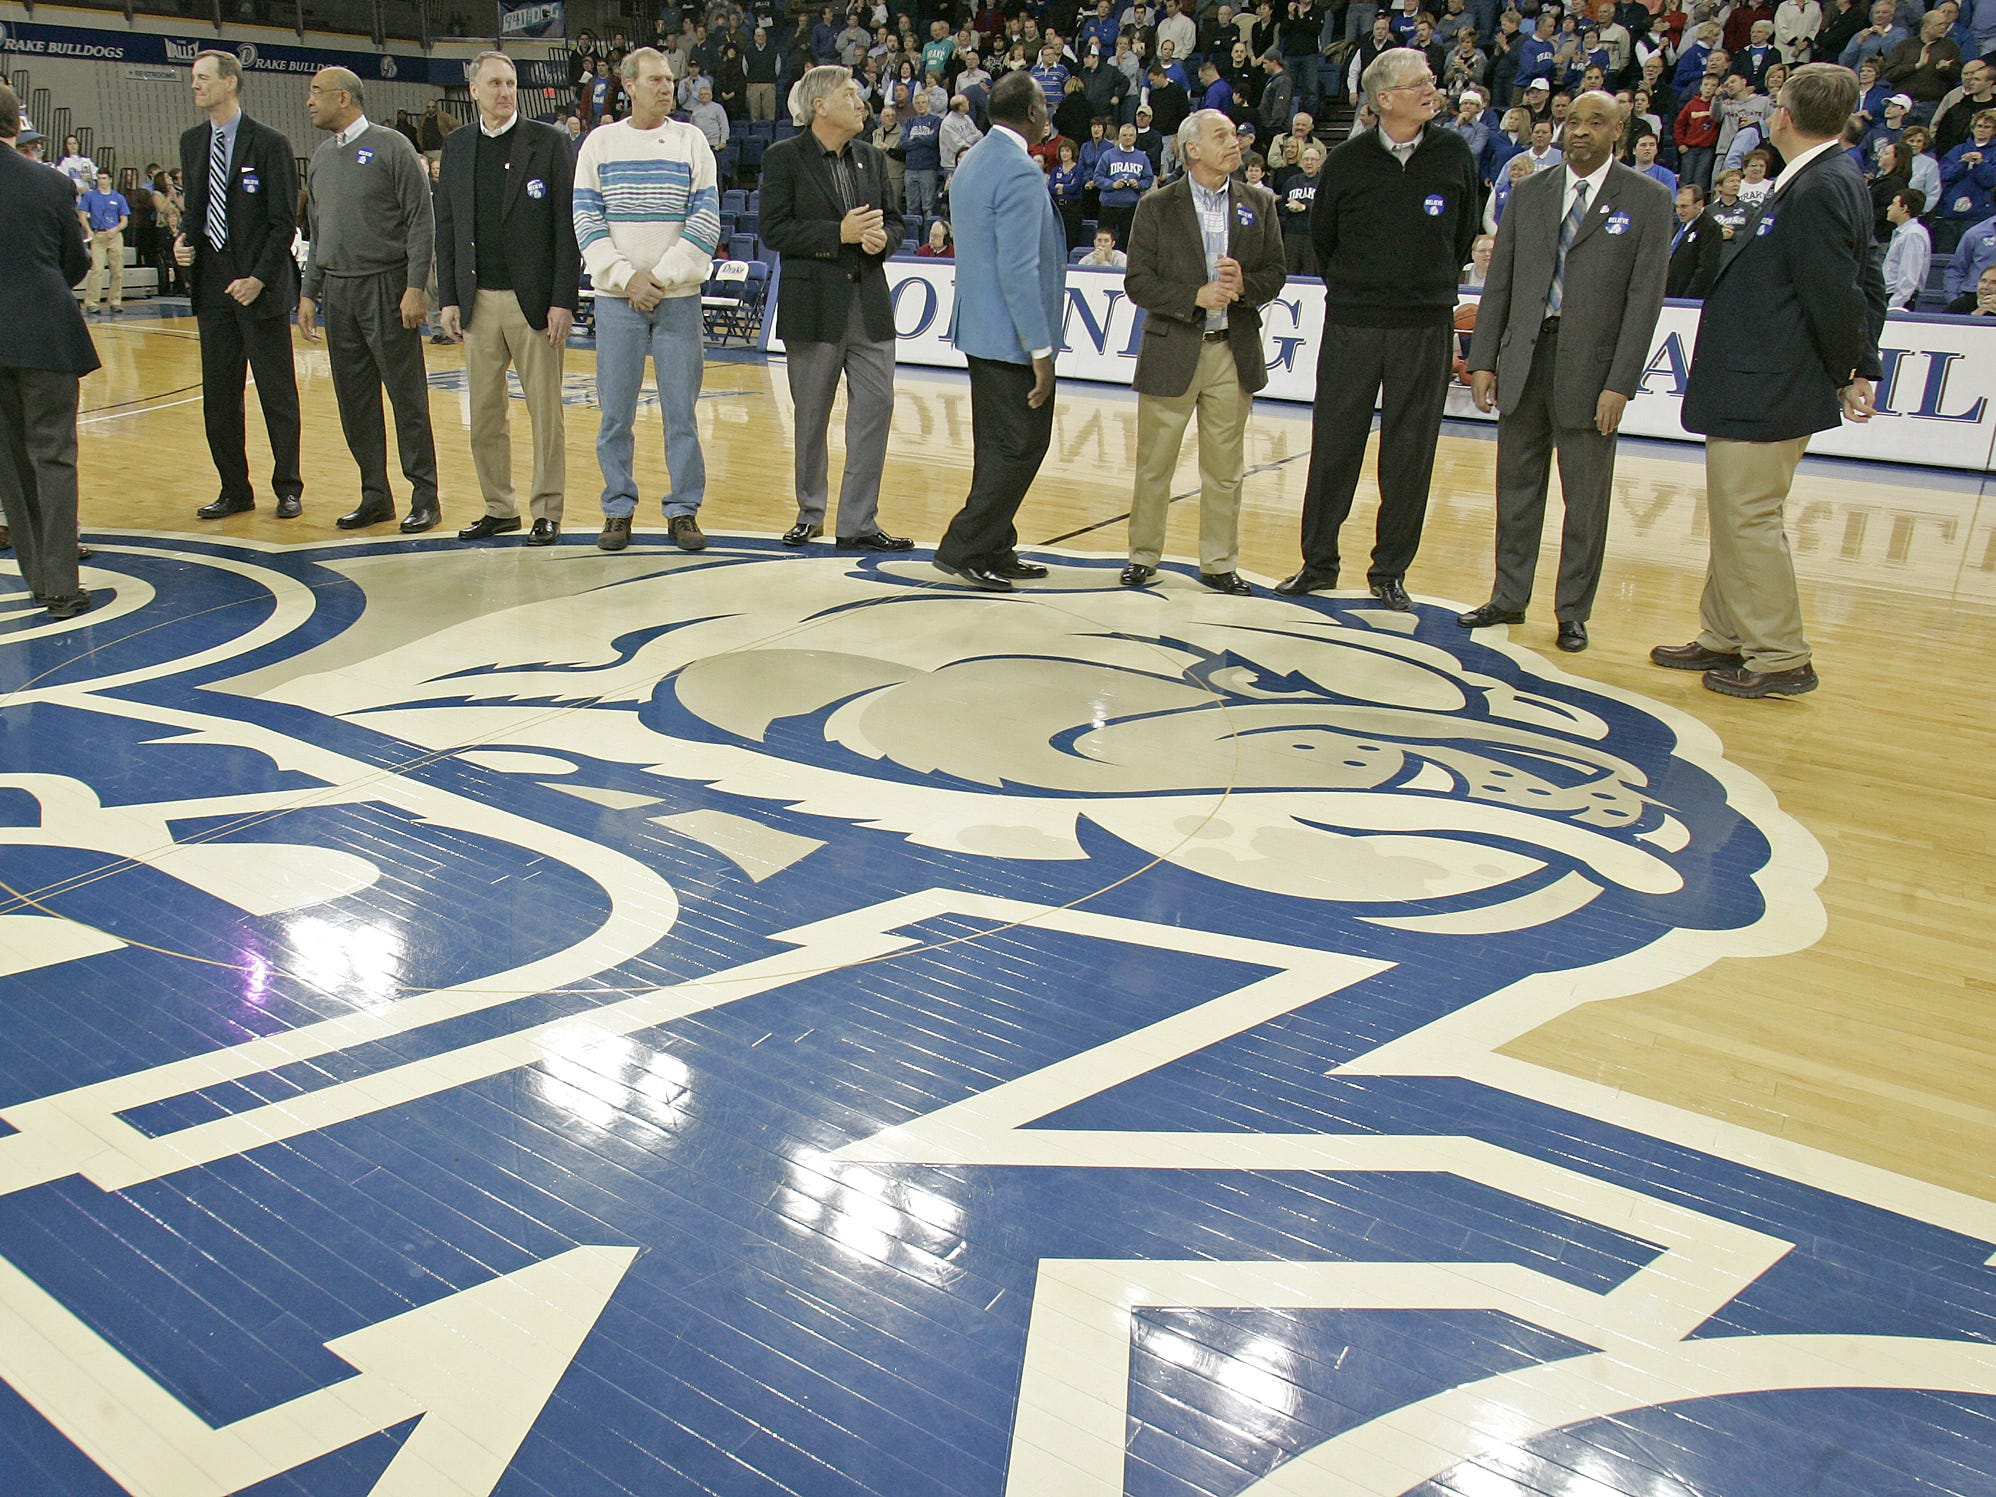 From 2008: Members of the 1969 Drake Final Four team gather at half court during a ceremony celebrating their famous run in the NCAA Tournament. Banners recognizing the team and late coach Maury John were unveiled during the festivities.